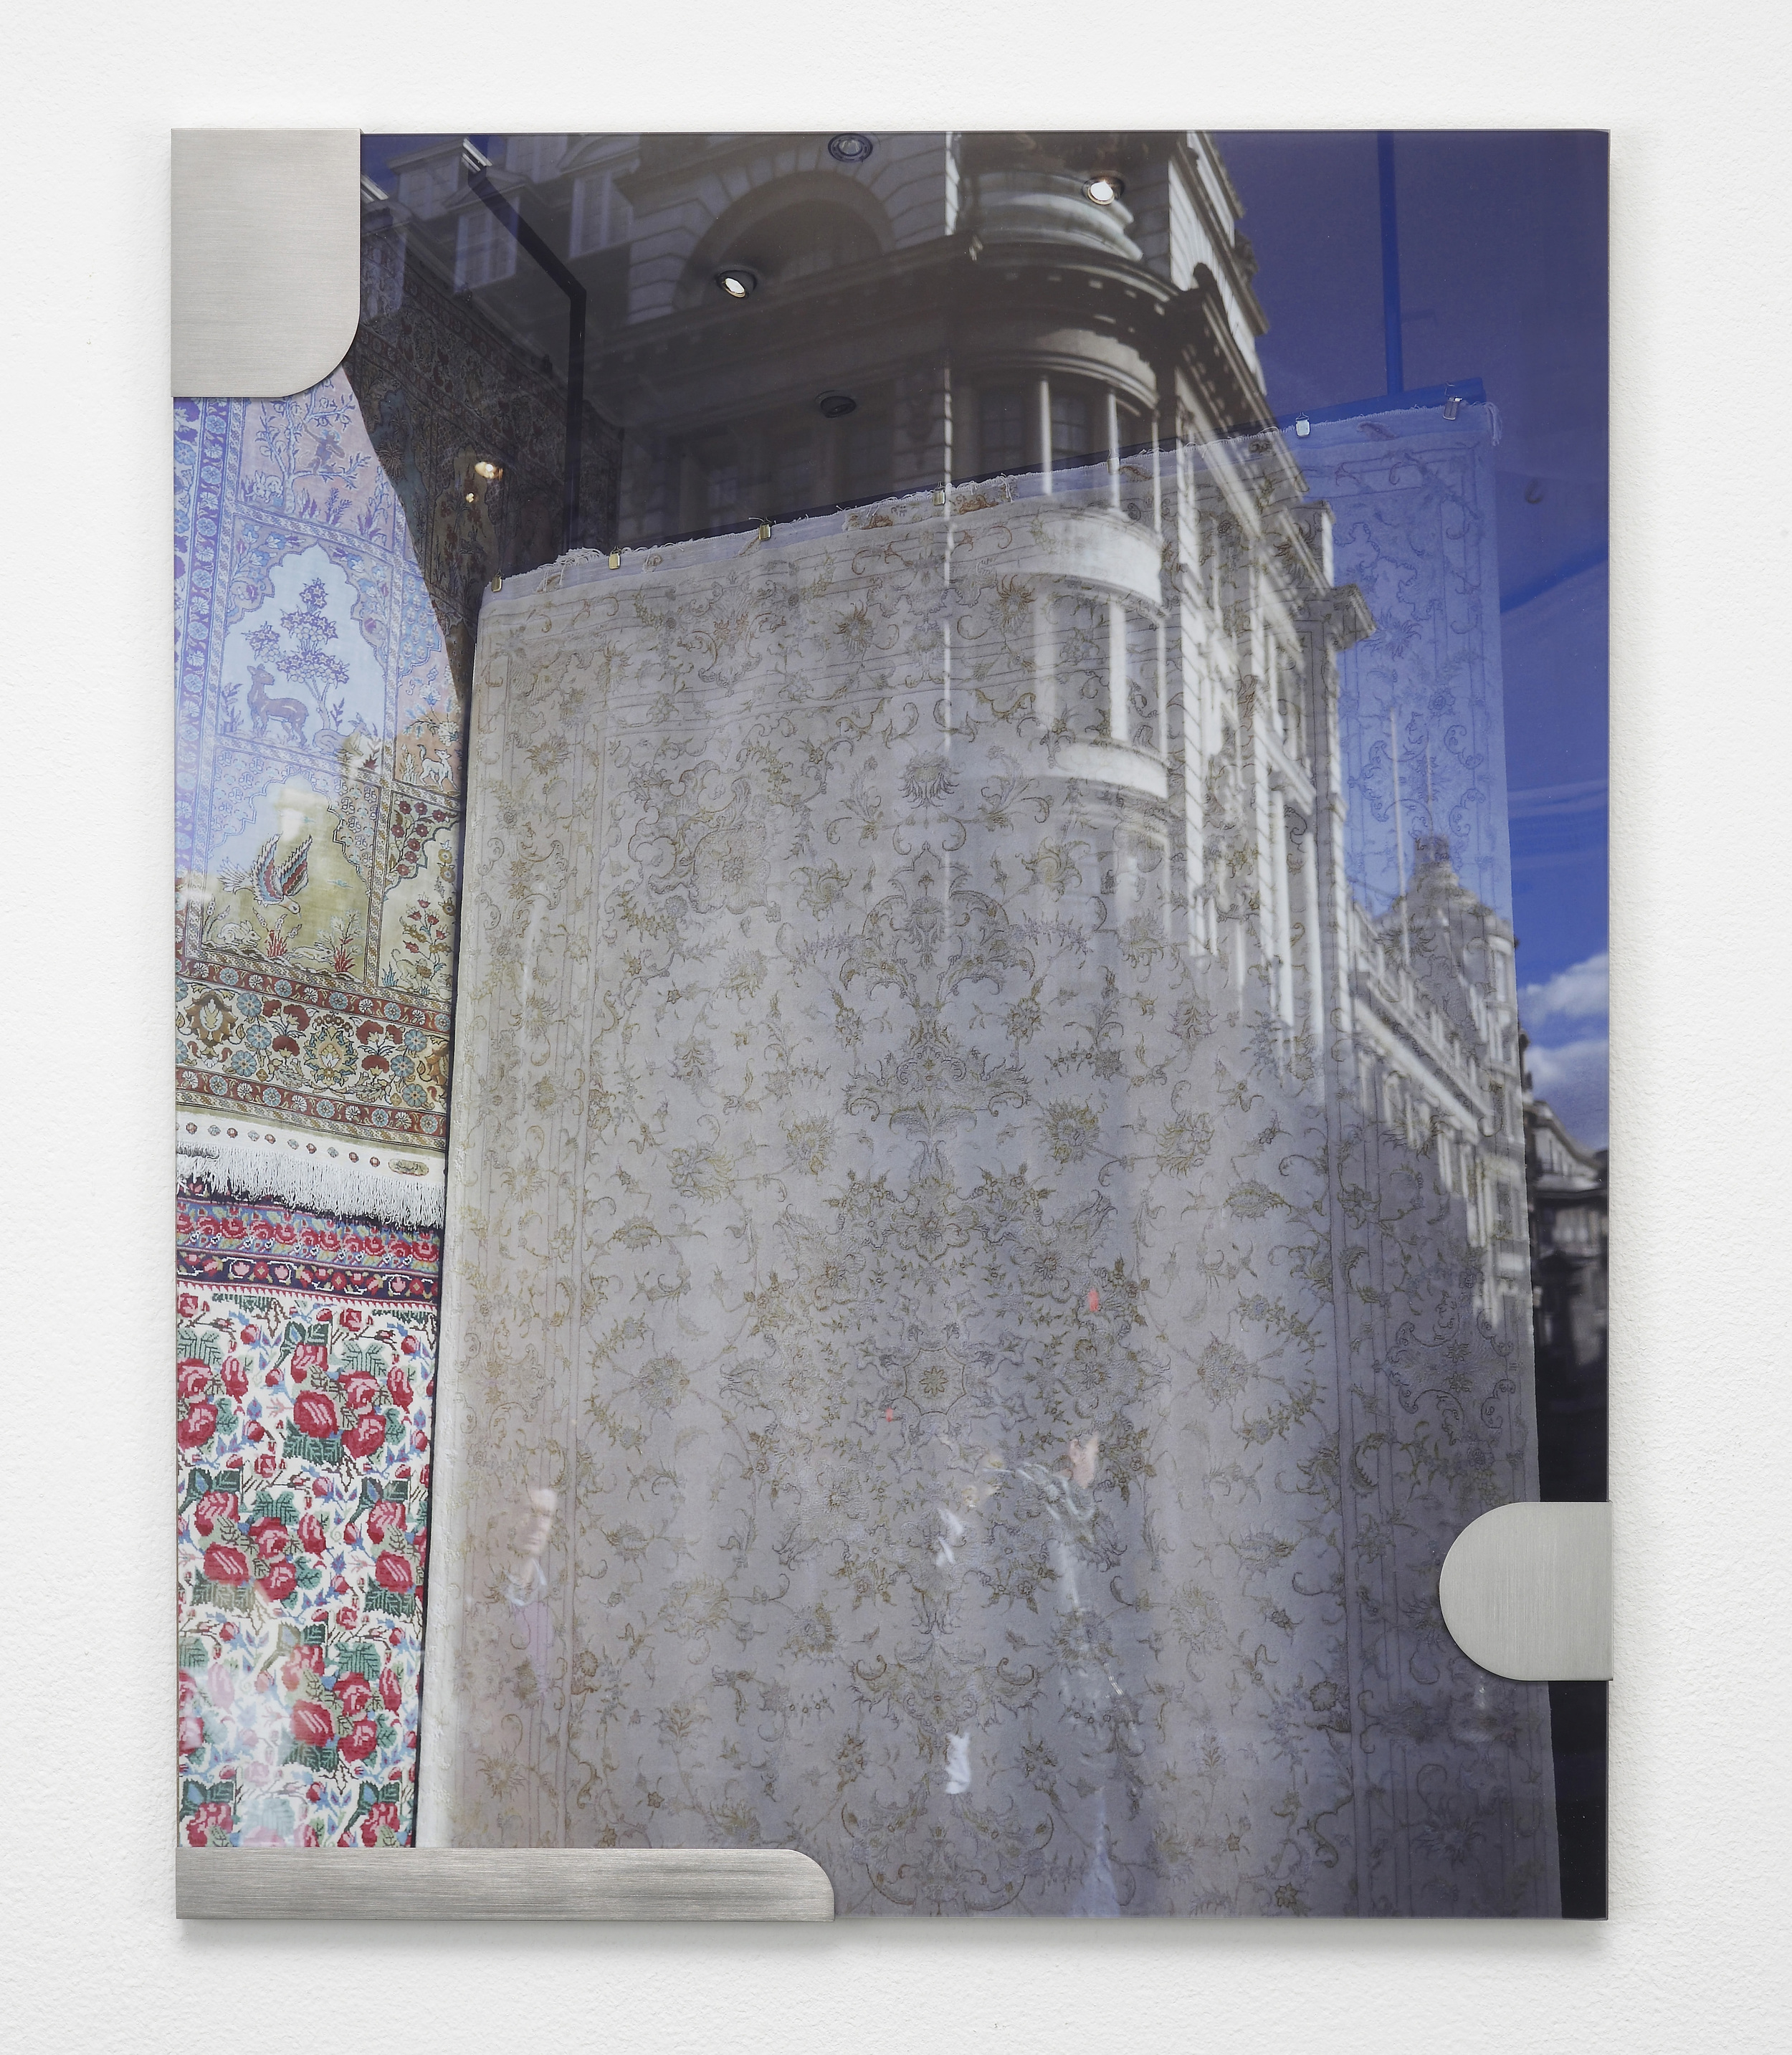 Nicole Wermers Carpets and Glass #5 2012 C-print, stainless steel clips, clip frame 50 x 40 cm